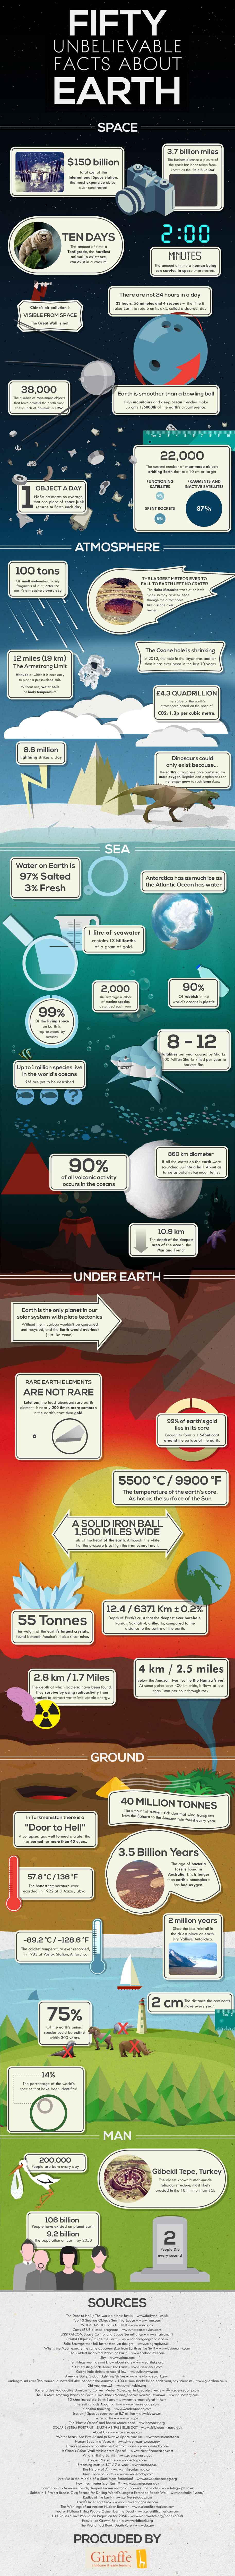 fifty-unbelievable-facts-about-earth_51814d5859029